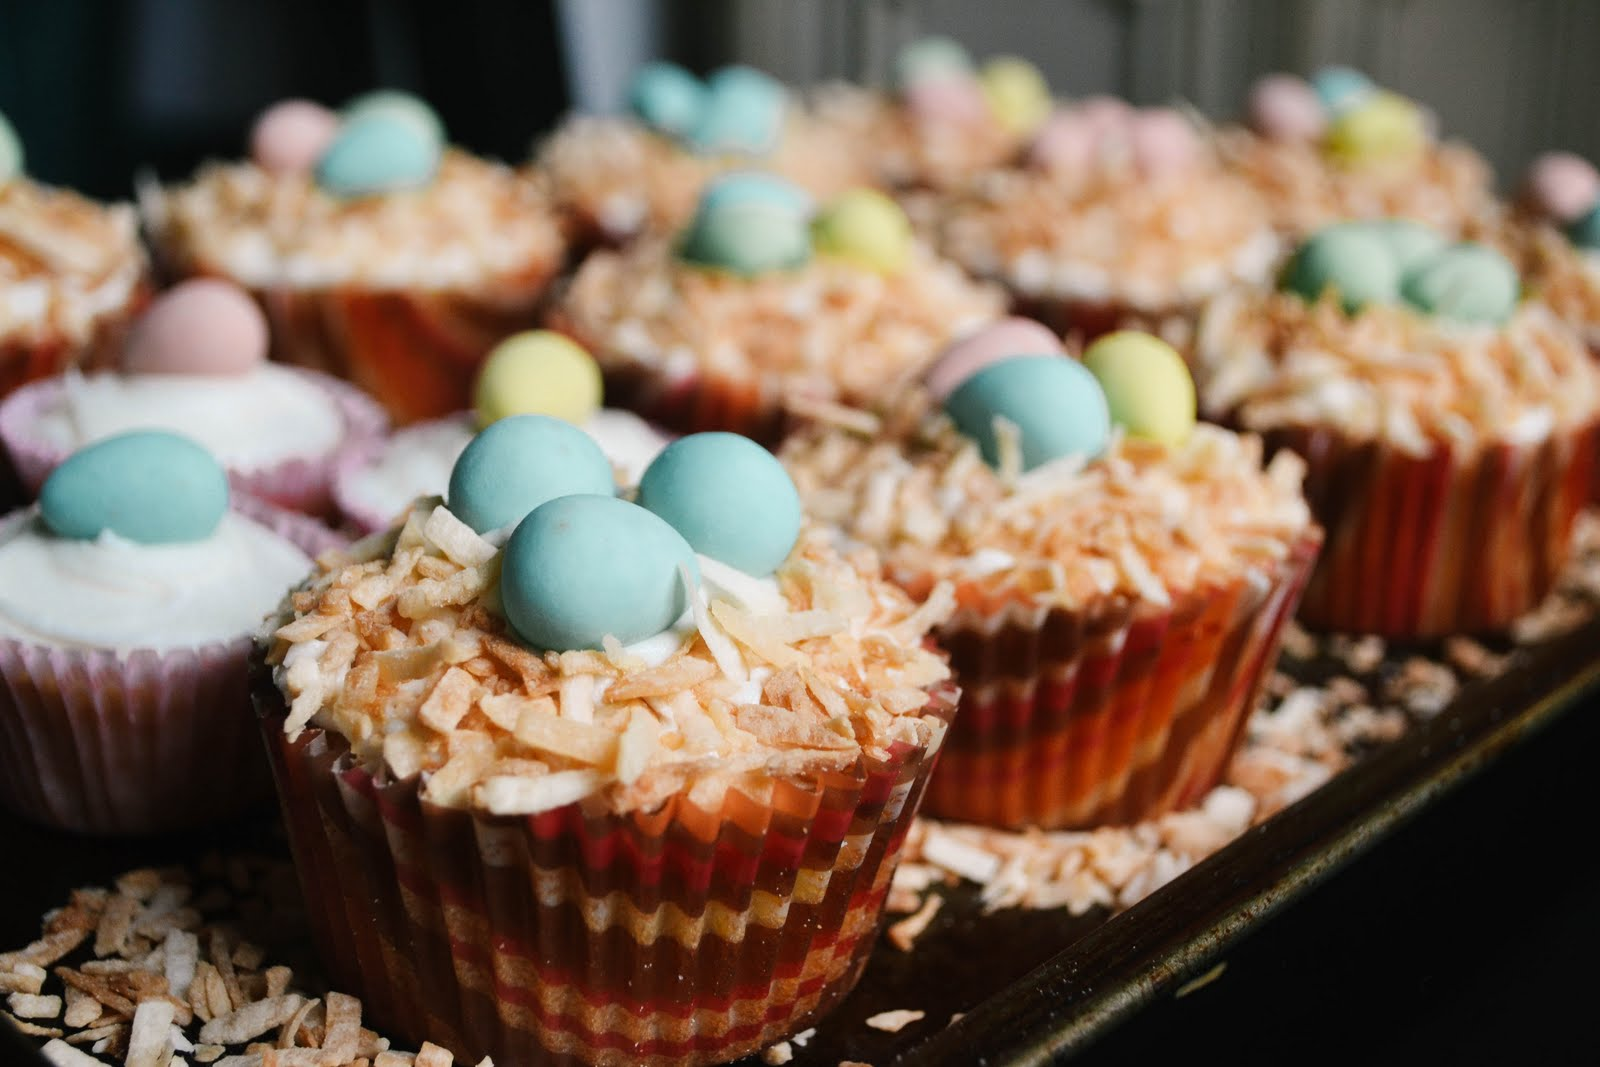 easter egg bird s nest cupcakes materials cupcakes doesn t matter what ...